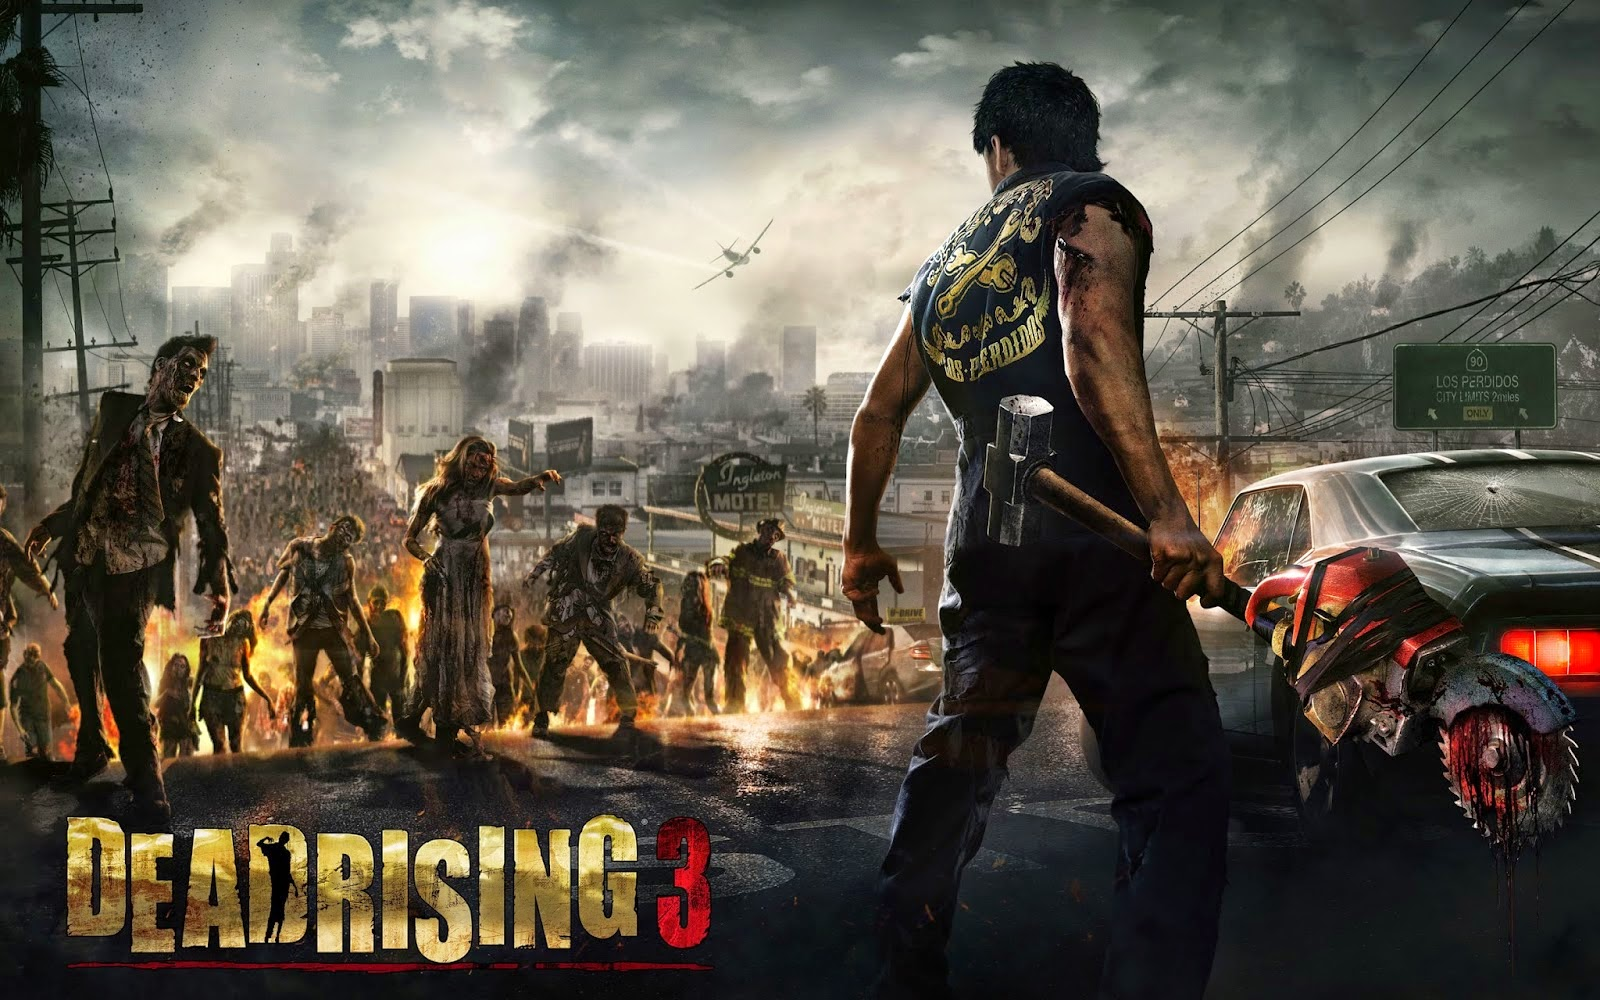 dead_rising_full_pc_game_direct_download_single_link_iso